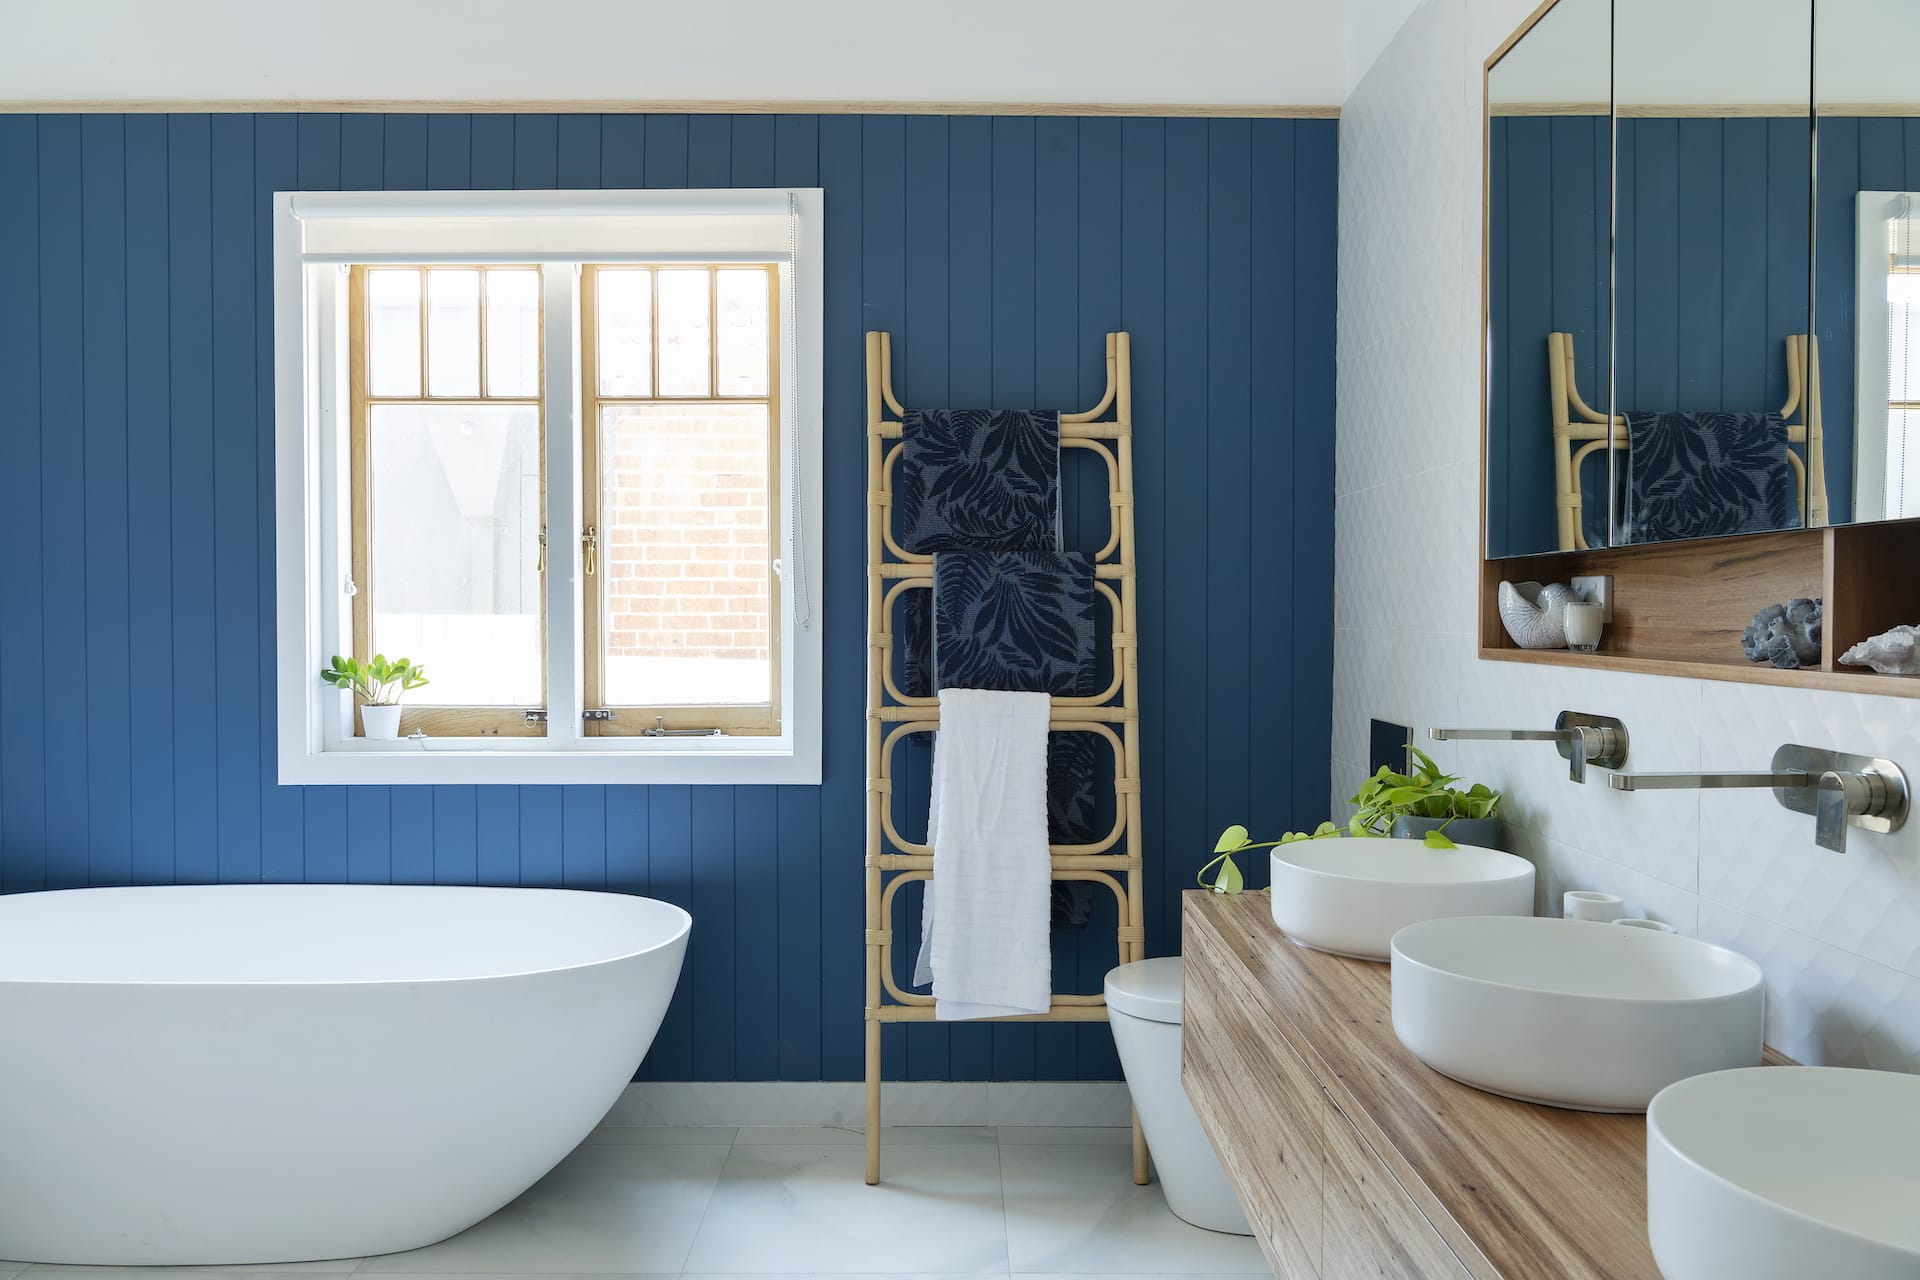 house rules 2020 tanya and dave reveal blue vj panel in hamptons bathroom with freestanding bath